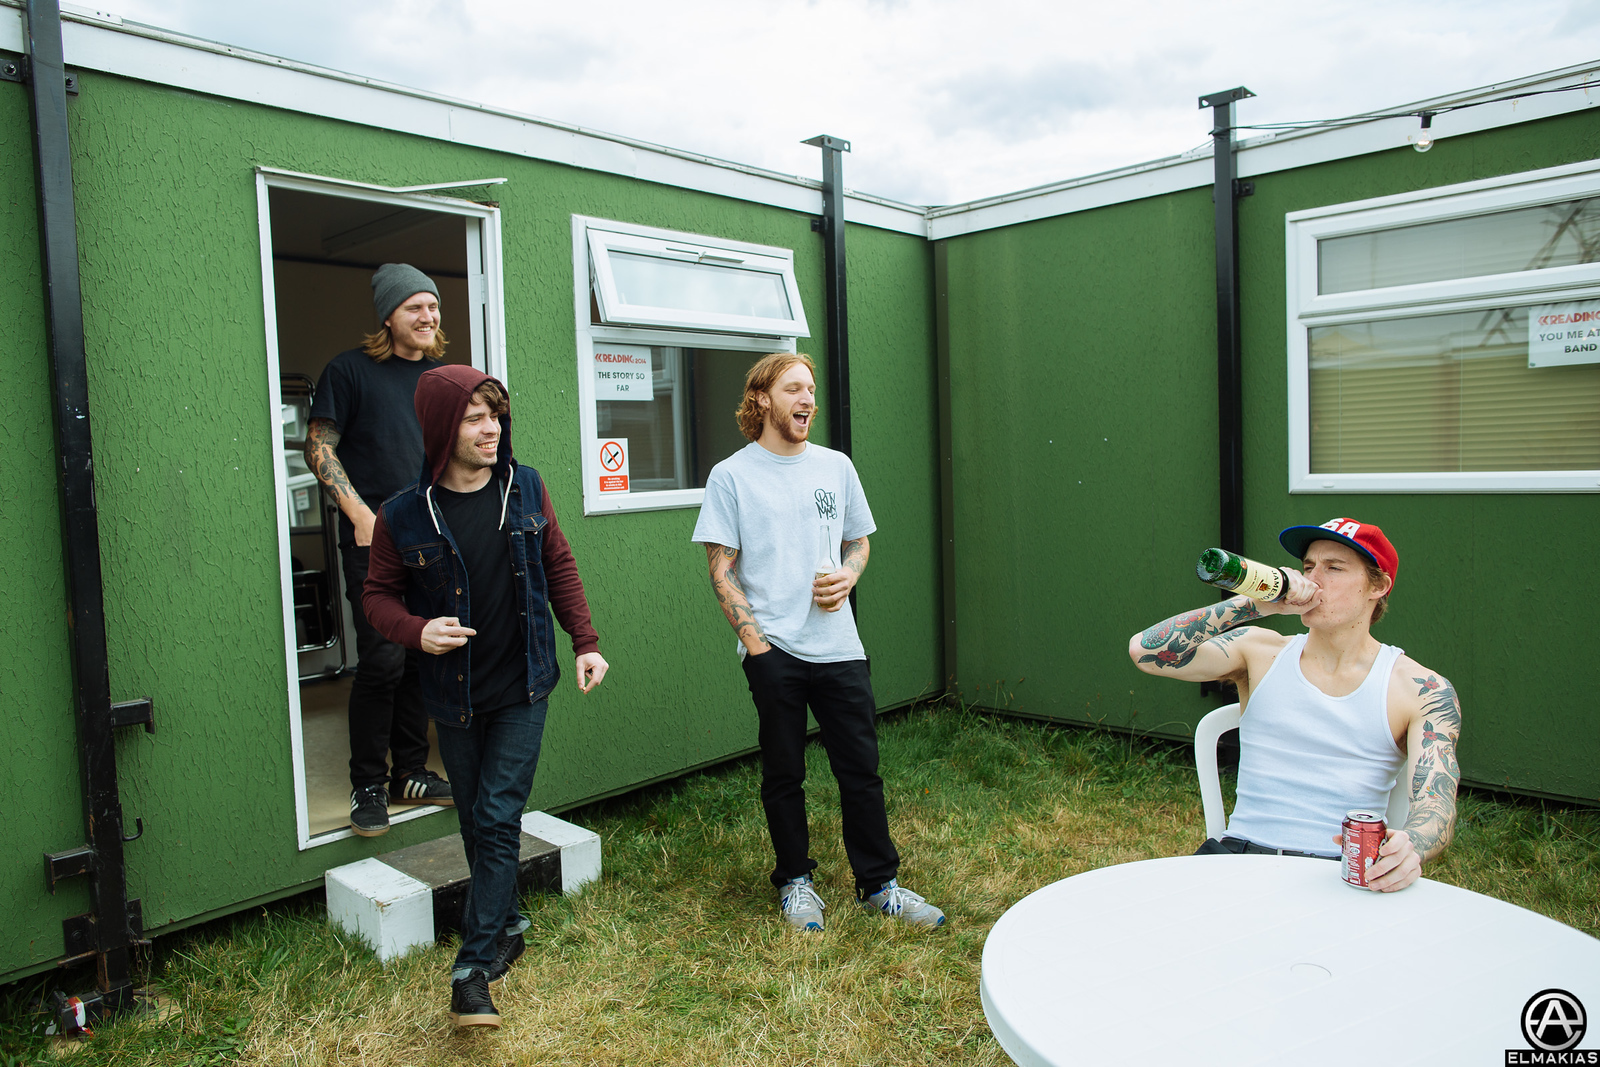 Alex Shelnutt hanging out with The Story So Far backstage at Reading Festival